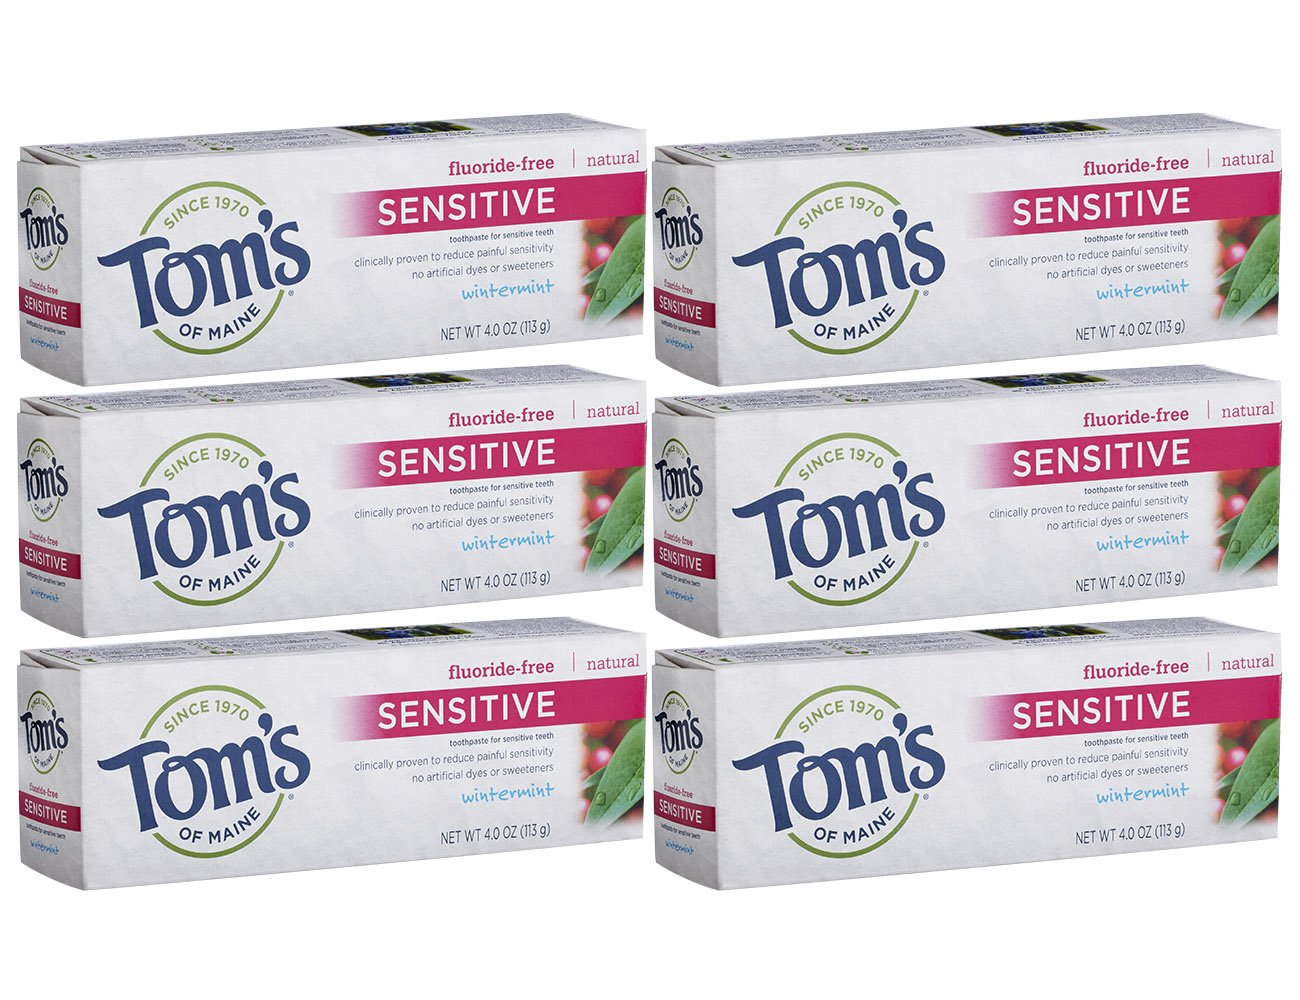 Tom's of Maine Fluoride Free Natural Sensitive Toothpaste, Wintermint, 4 Ounce, Pack of 6